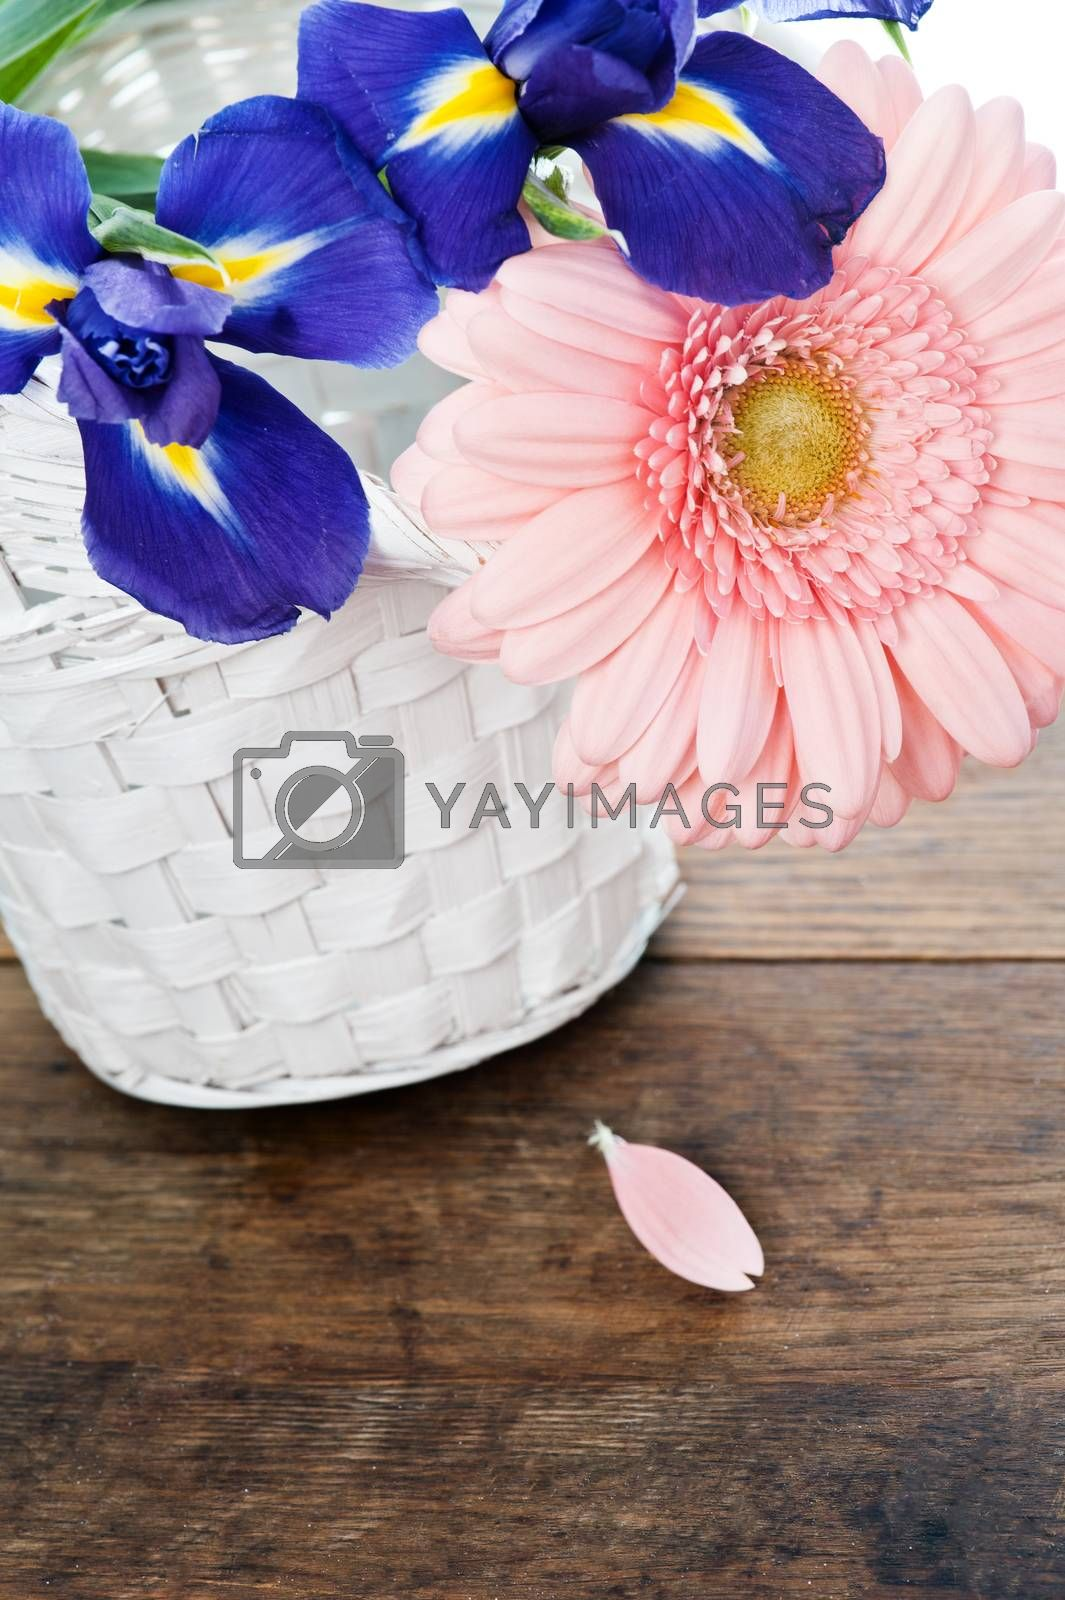 Blue irisis and pink gerbera daisy flower in white basket on wooden table. Vintage style